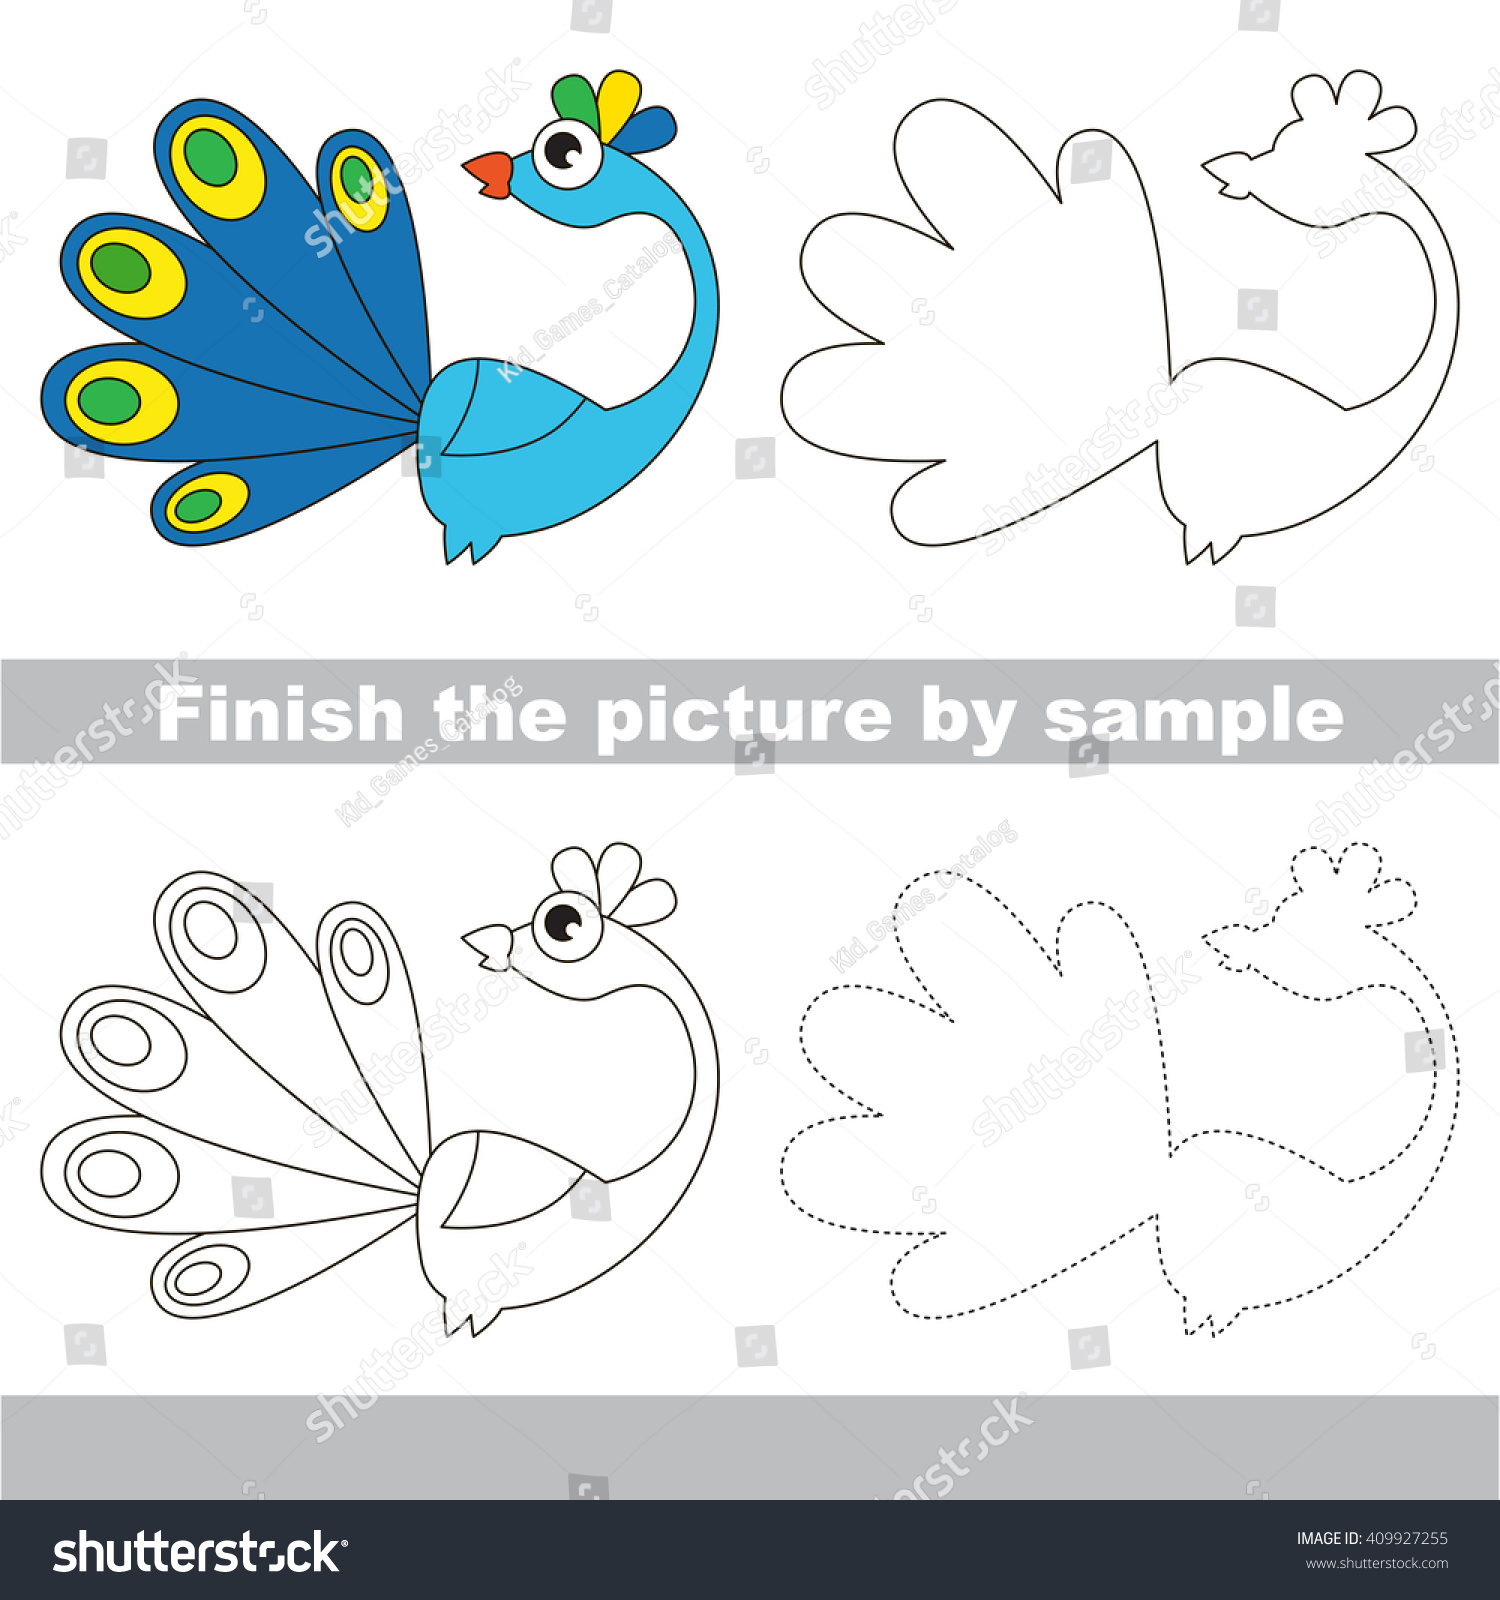 Drawing Worksheet Children Finish Picture Draw Stock Vector ...